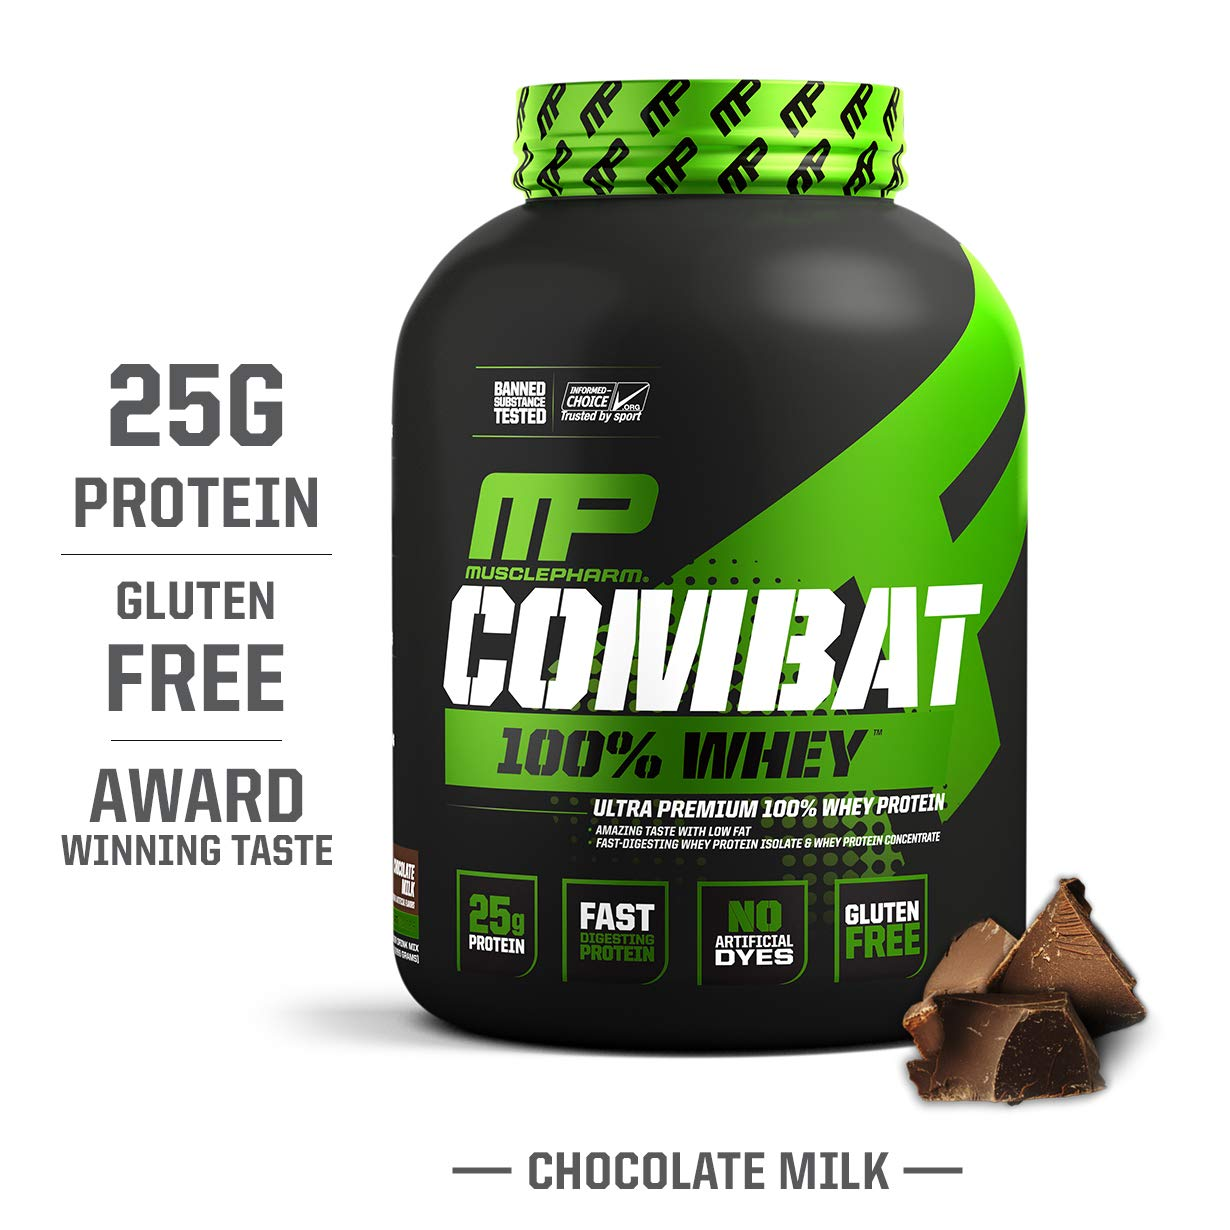 MusclePharm Combat 100% Whey, Muscle-Building Whey Protein Powder, 25 g of Ultra-Premium, Gluten-Free, Low-Fat Blend of Fast-Digesting Whey Protein, Chocolate Milk, 5-Pound, 68 Servings by Muscle Pharm